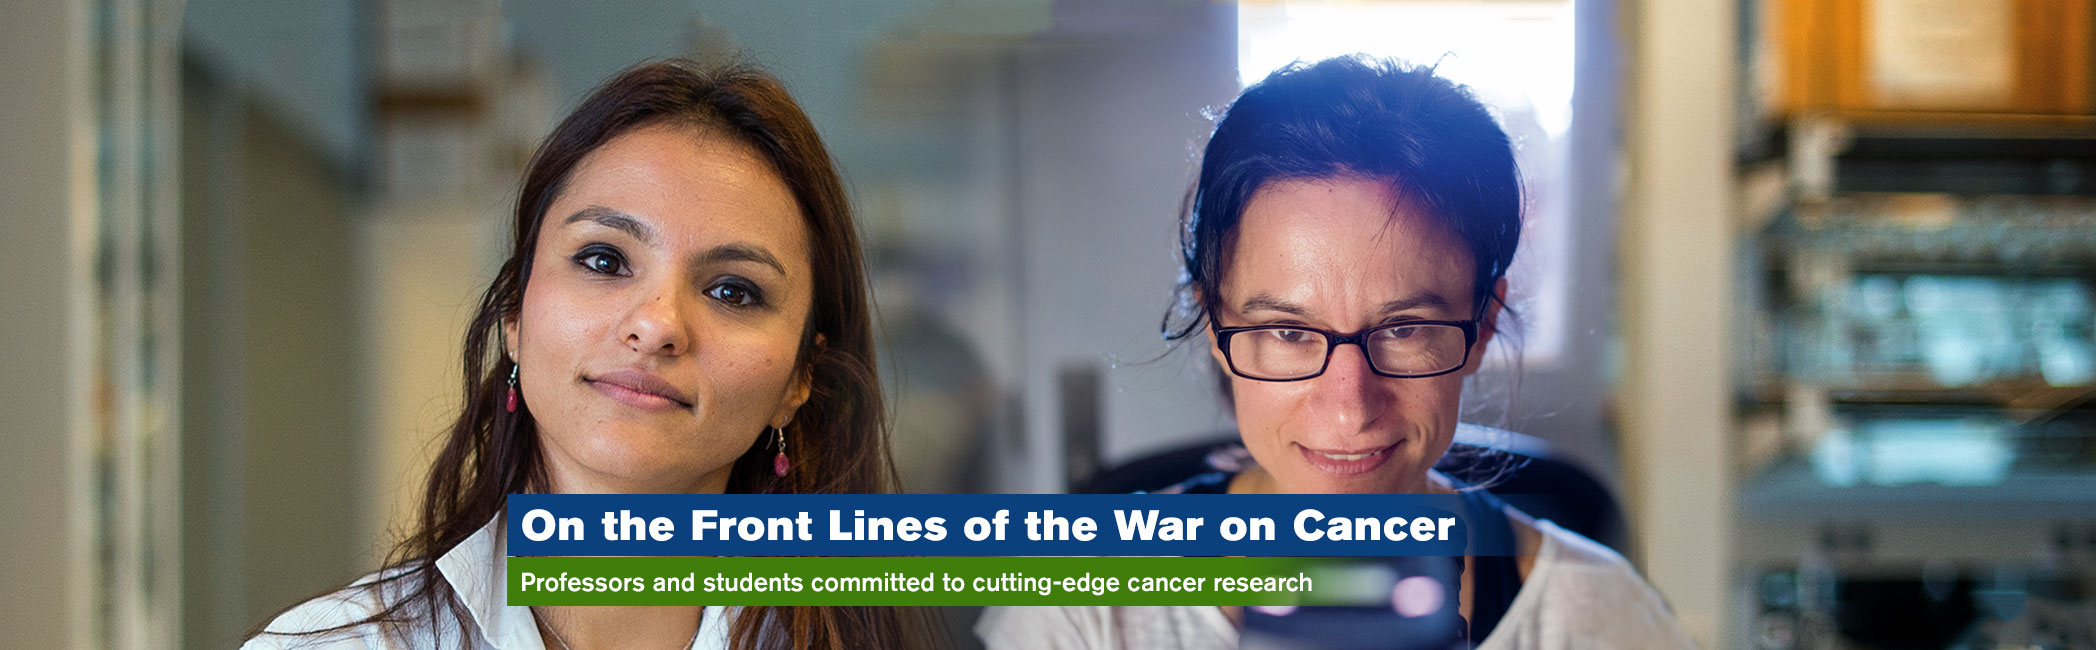 Lehman professors on the front lines of the war on cancer banner image